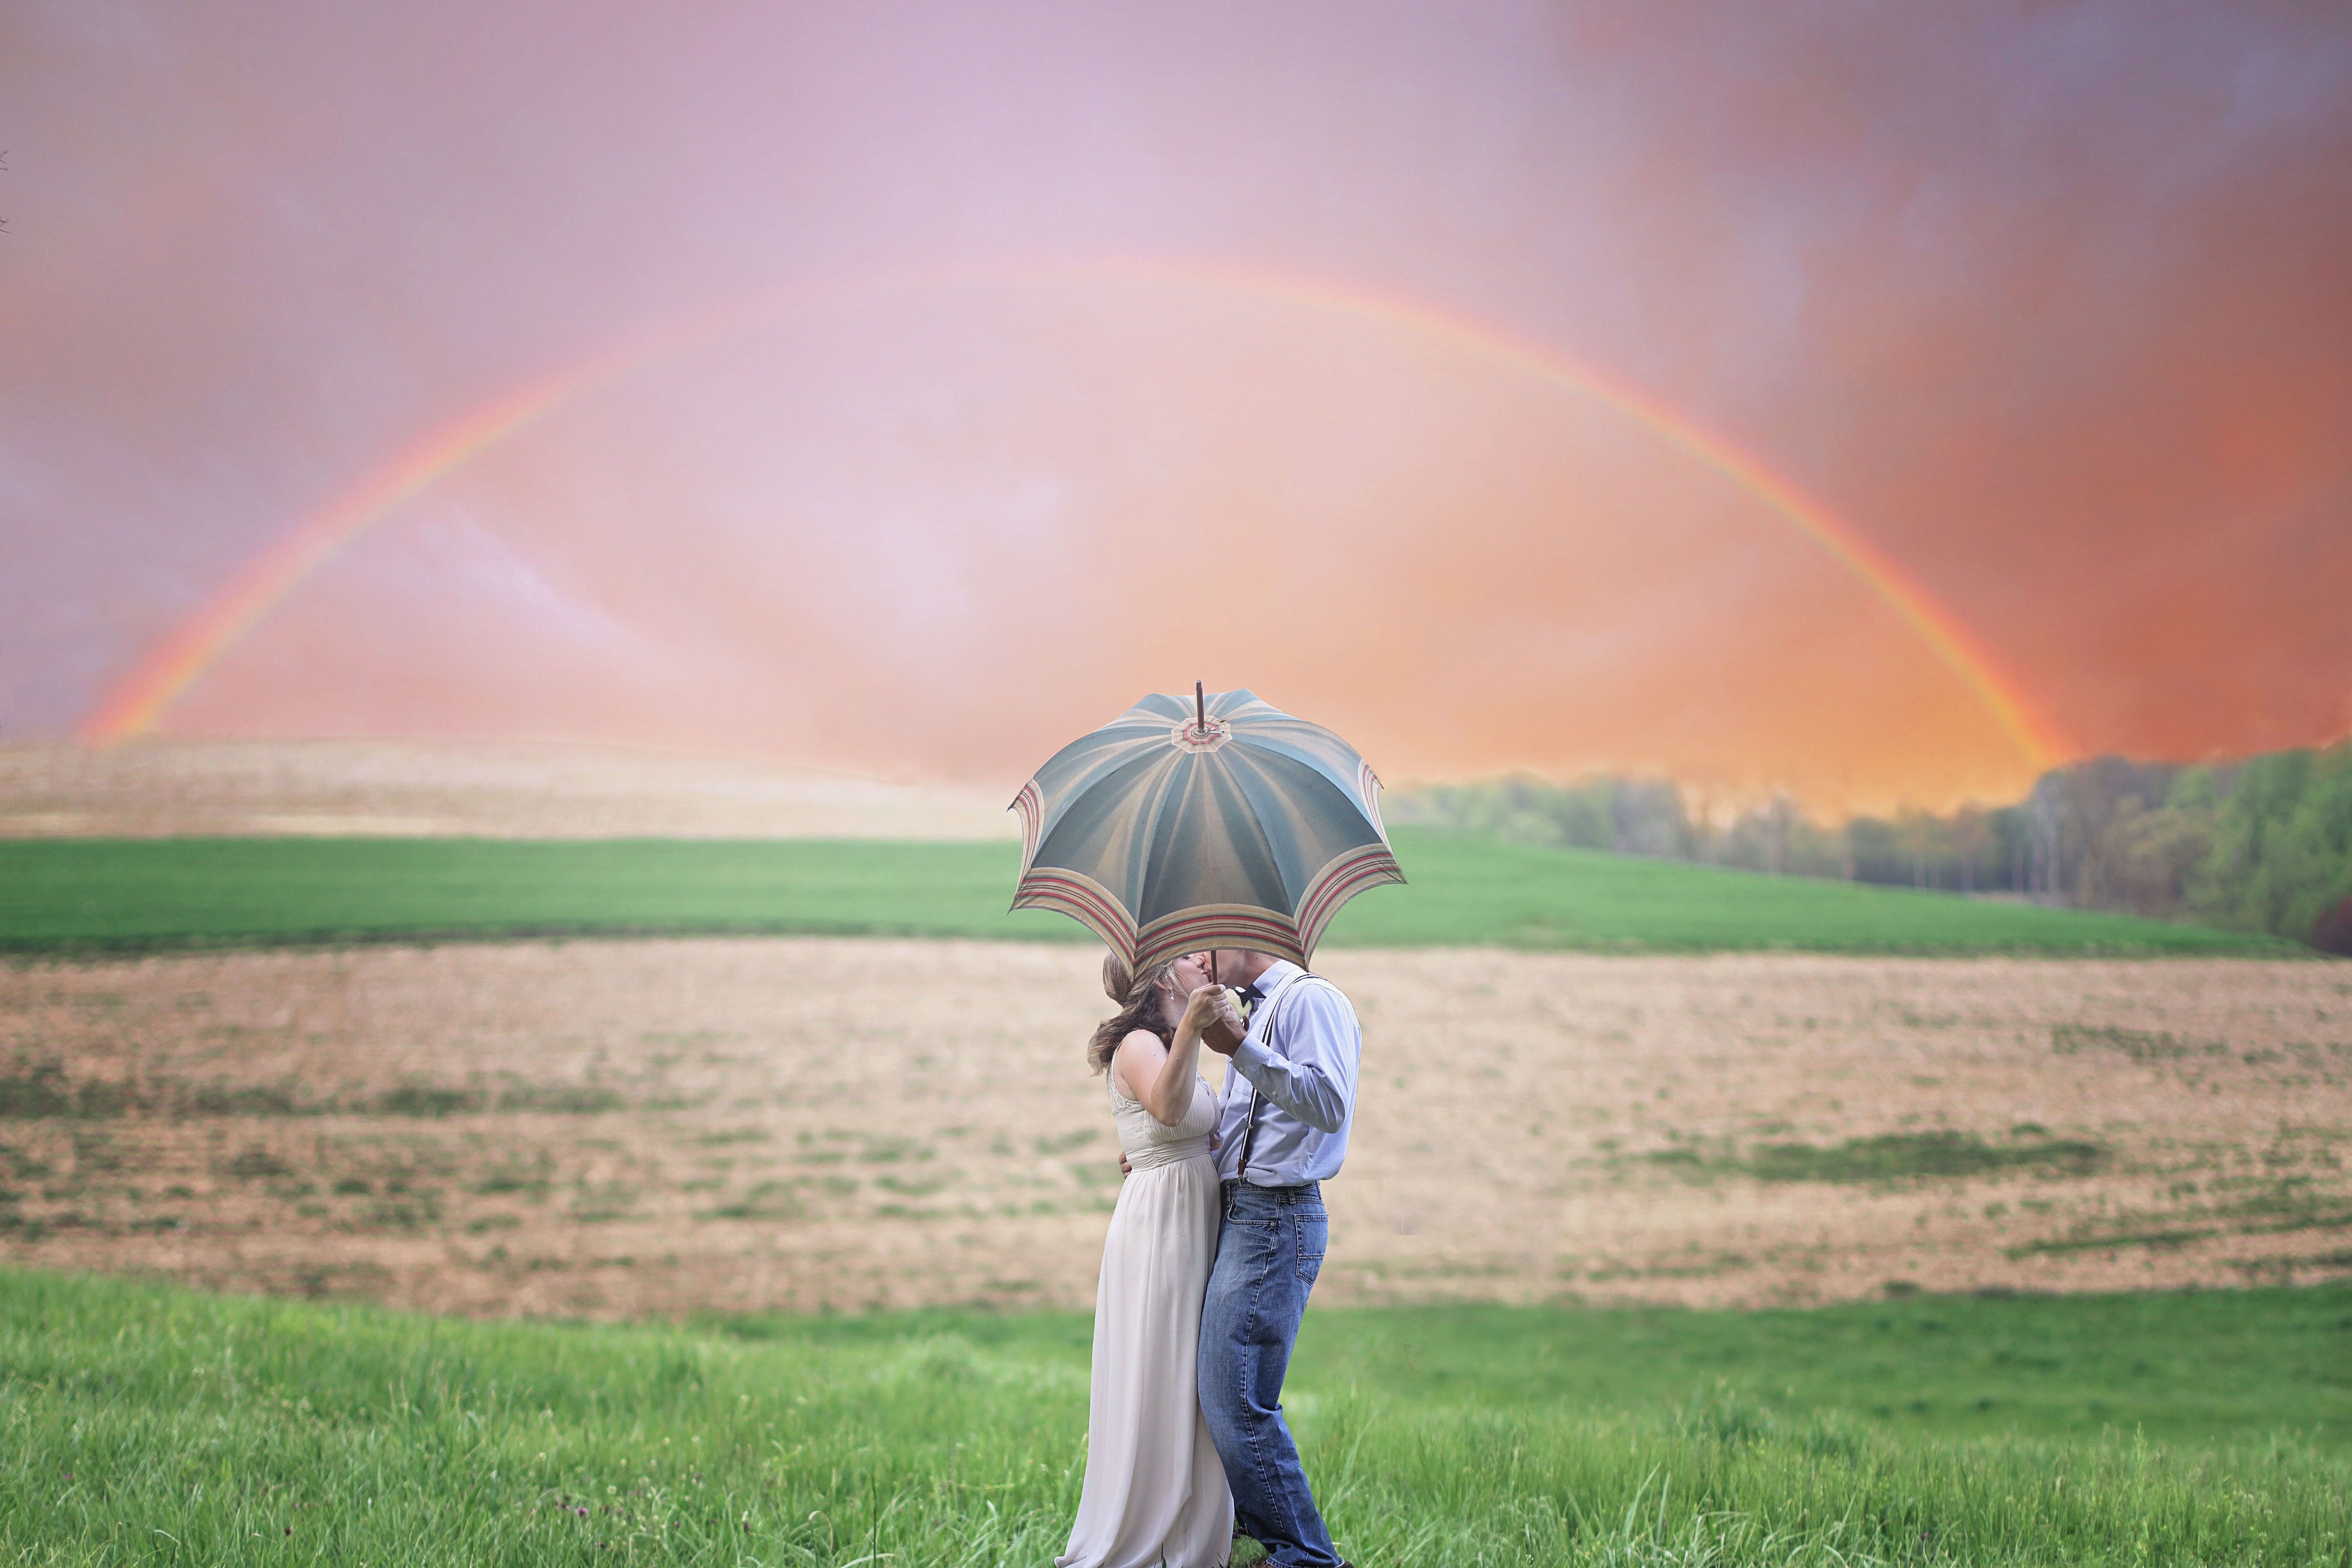 Couple, field, sky, crops, romance